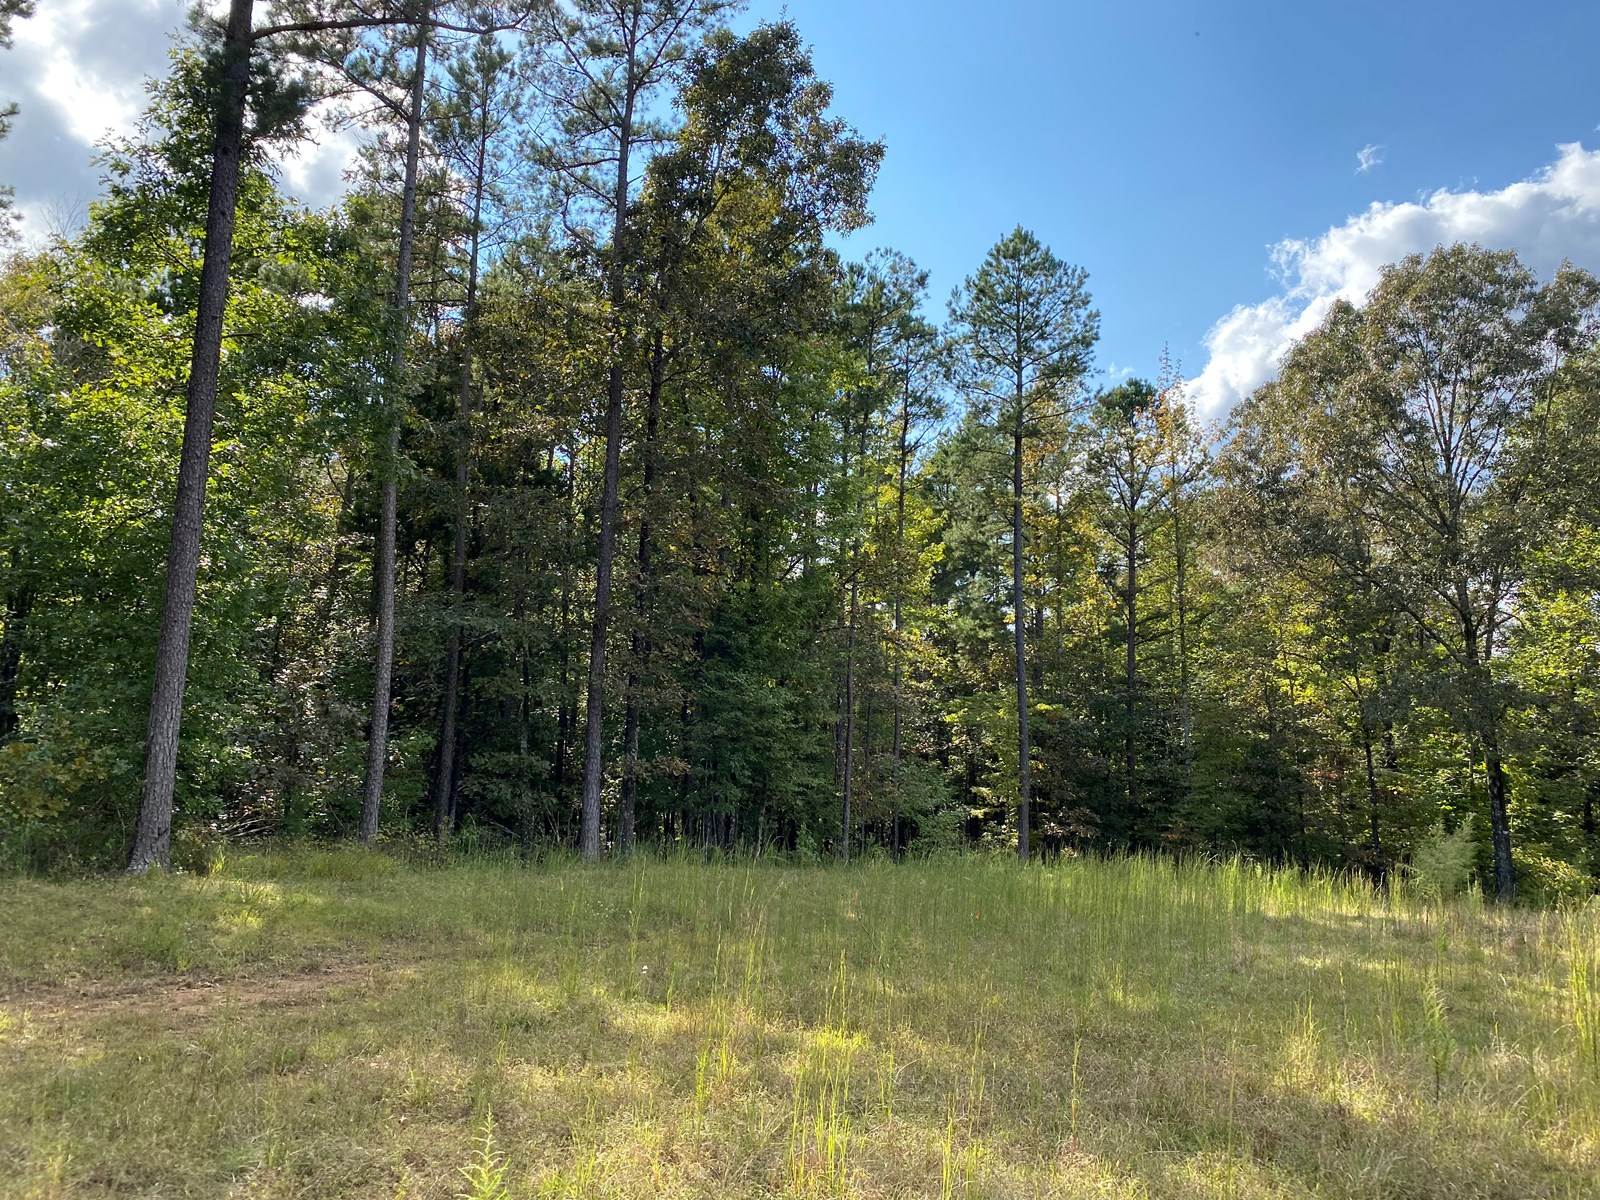 5 ACRES OF LAND FOR SALE IN TN, CLEAR BUILDING SITE, PRIVATE